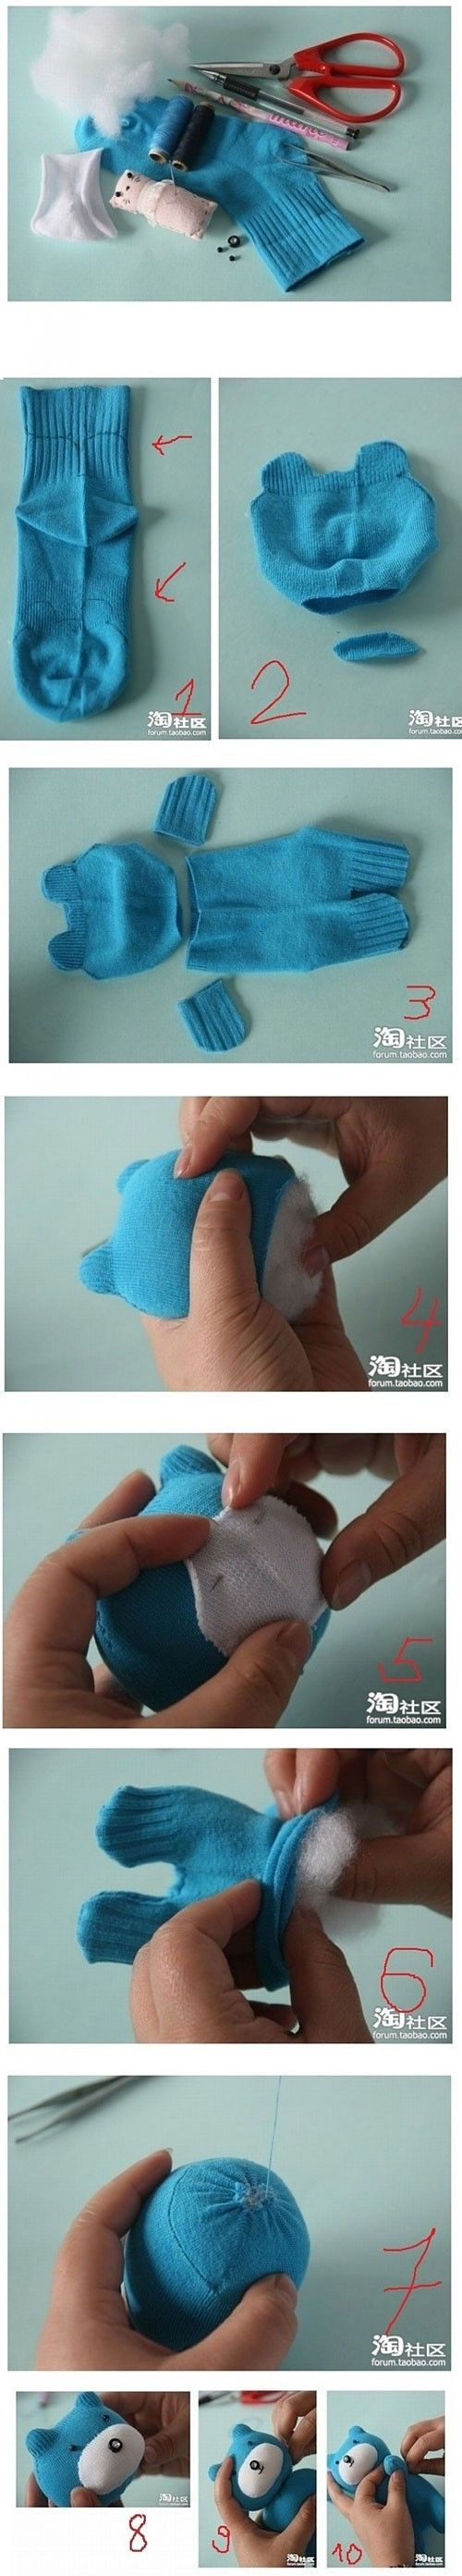 DIY photo tutorial to make a amigurumi teddy bear from a recycled or repurposed sock. Fun! My review ;) so creative a cute!im trying it!